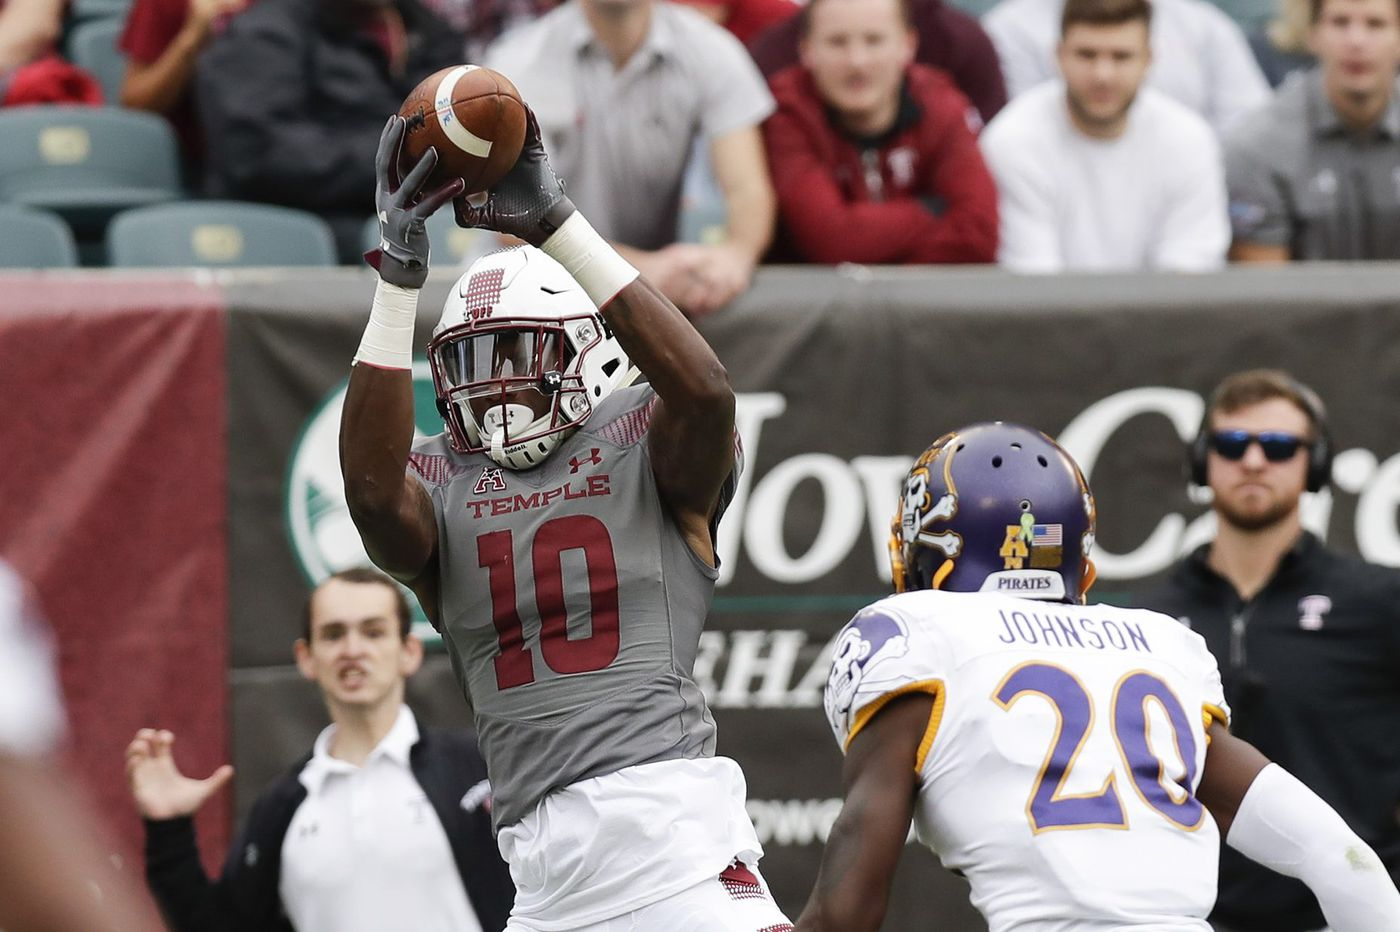 100% authentic 74c53 129cd Temple routs East Carolina, 49-6